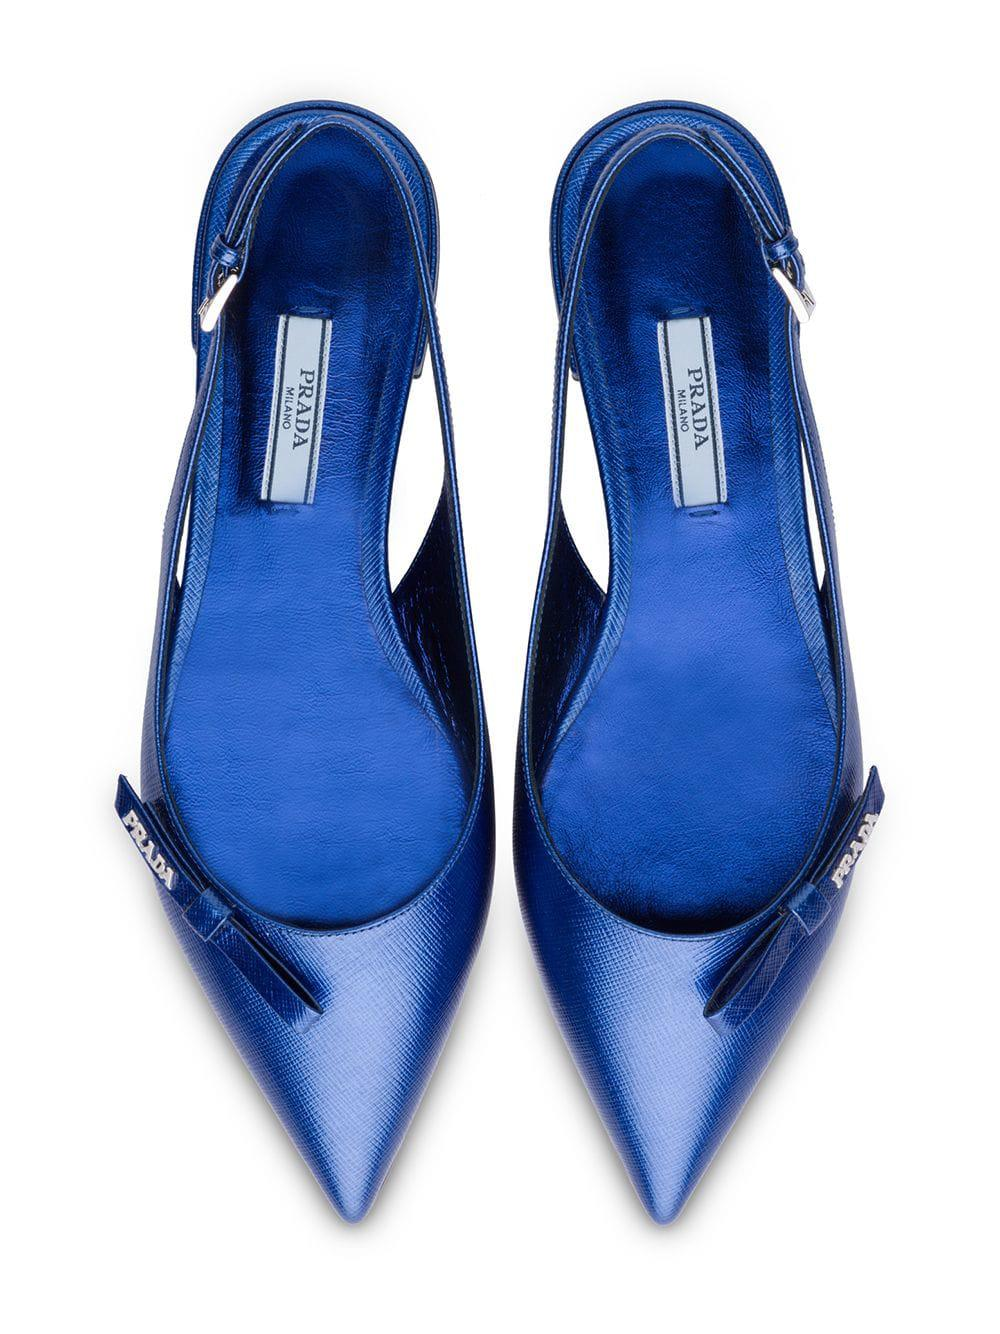 c1a69214ca Prada Metallic Leather Slingback Ballerinas in Blue - Lyst